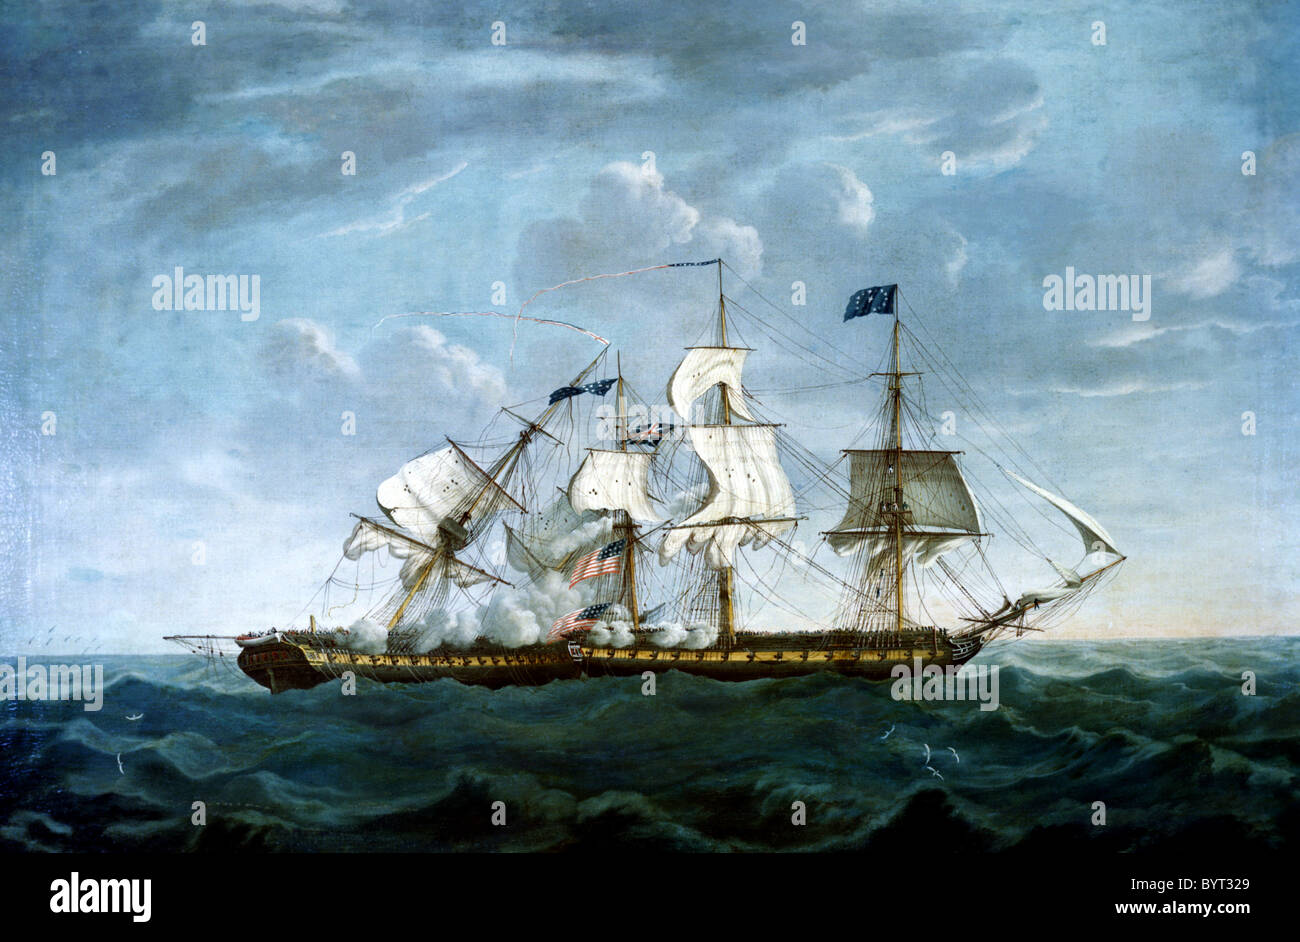 U.S. Frigate Constitution as she defeats HMS Guerriere during the War of 1812 against Great Britain. - Stock Image